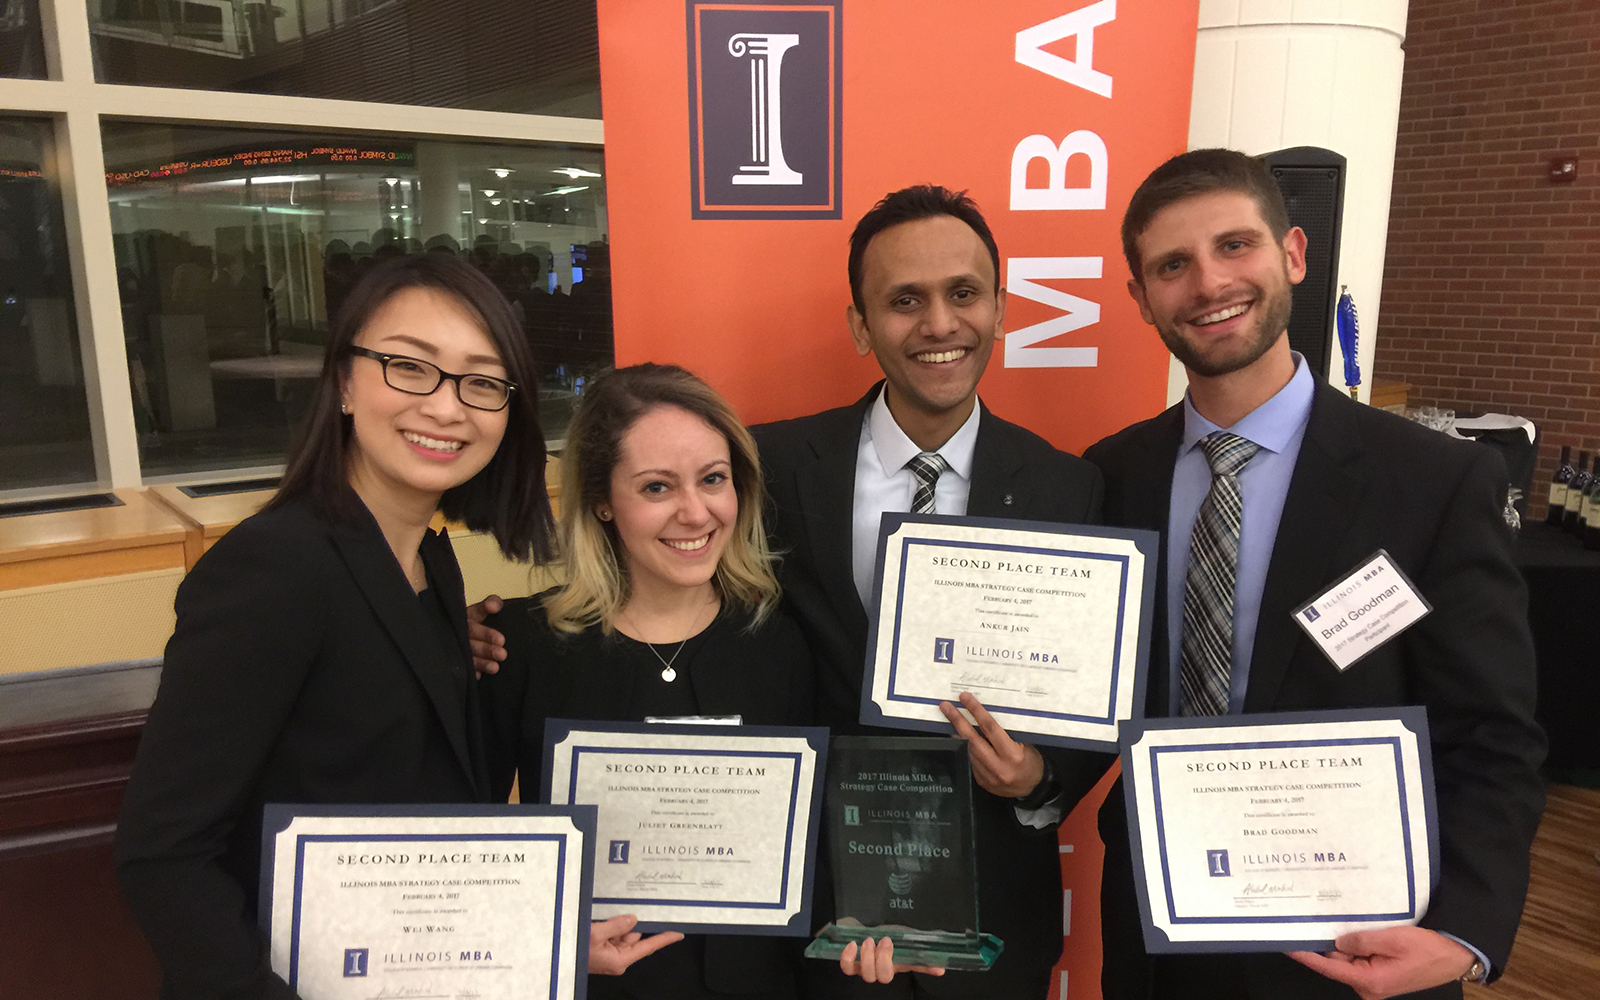 Pictured from left: Wei Wang '17, Juliet Greenblatt '18, Ankur Jain '18, and Brad Goodman '17 (UConn School of Business)